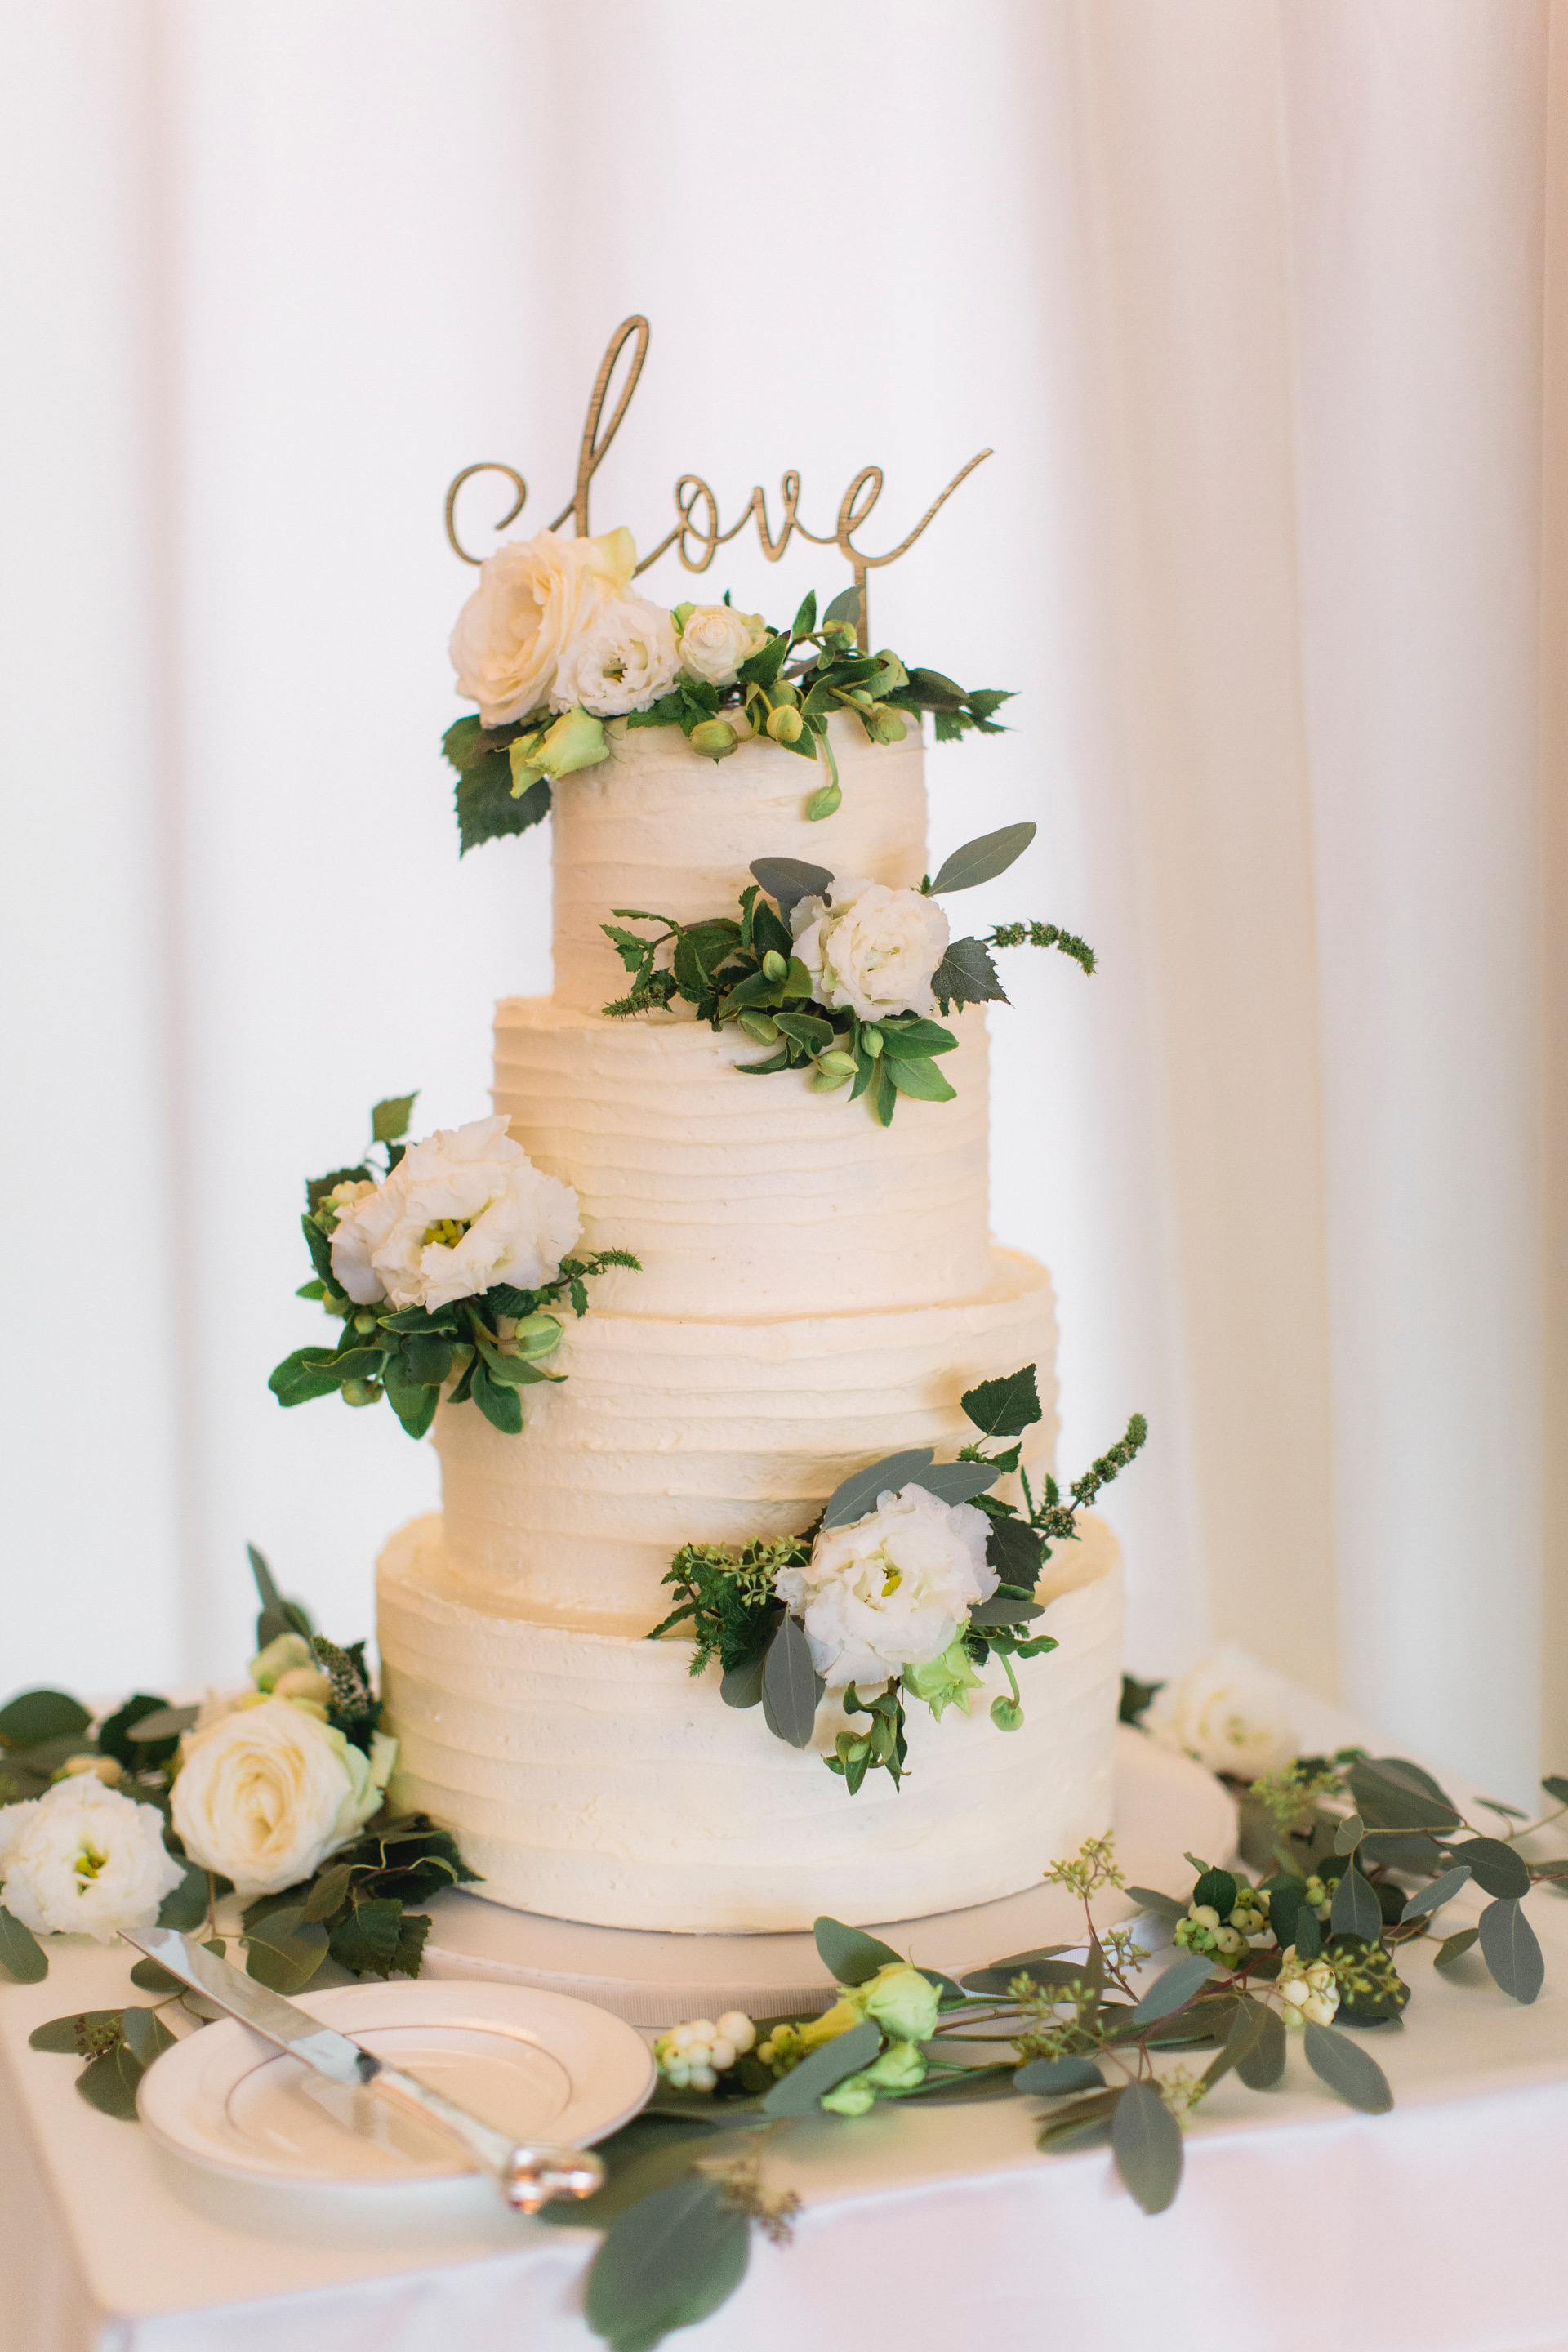 Rustic Buttercream Beauty